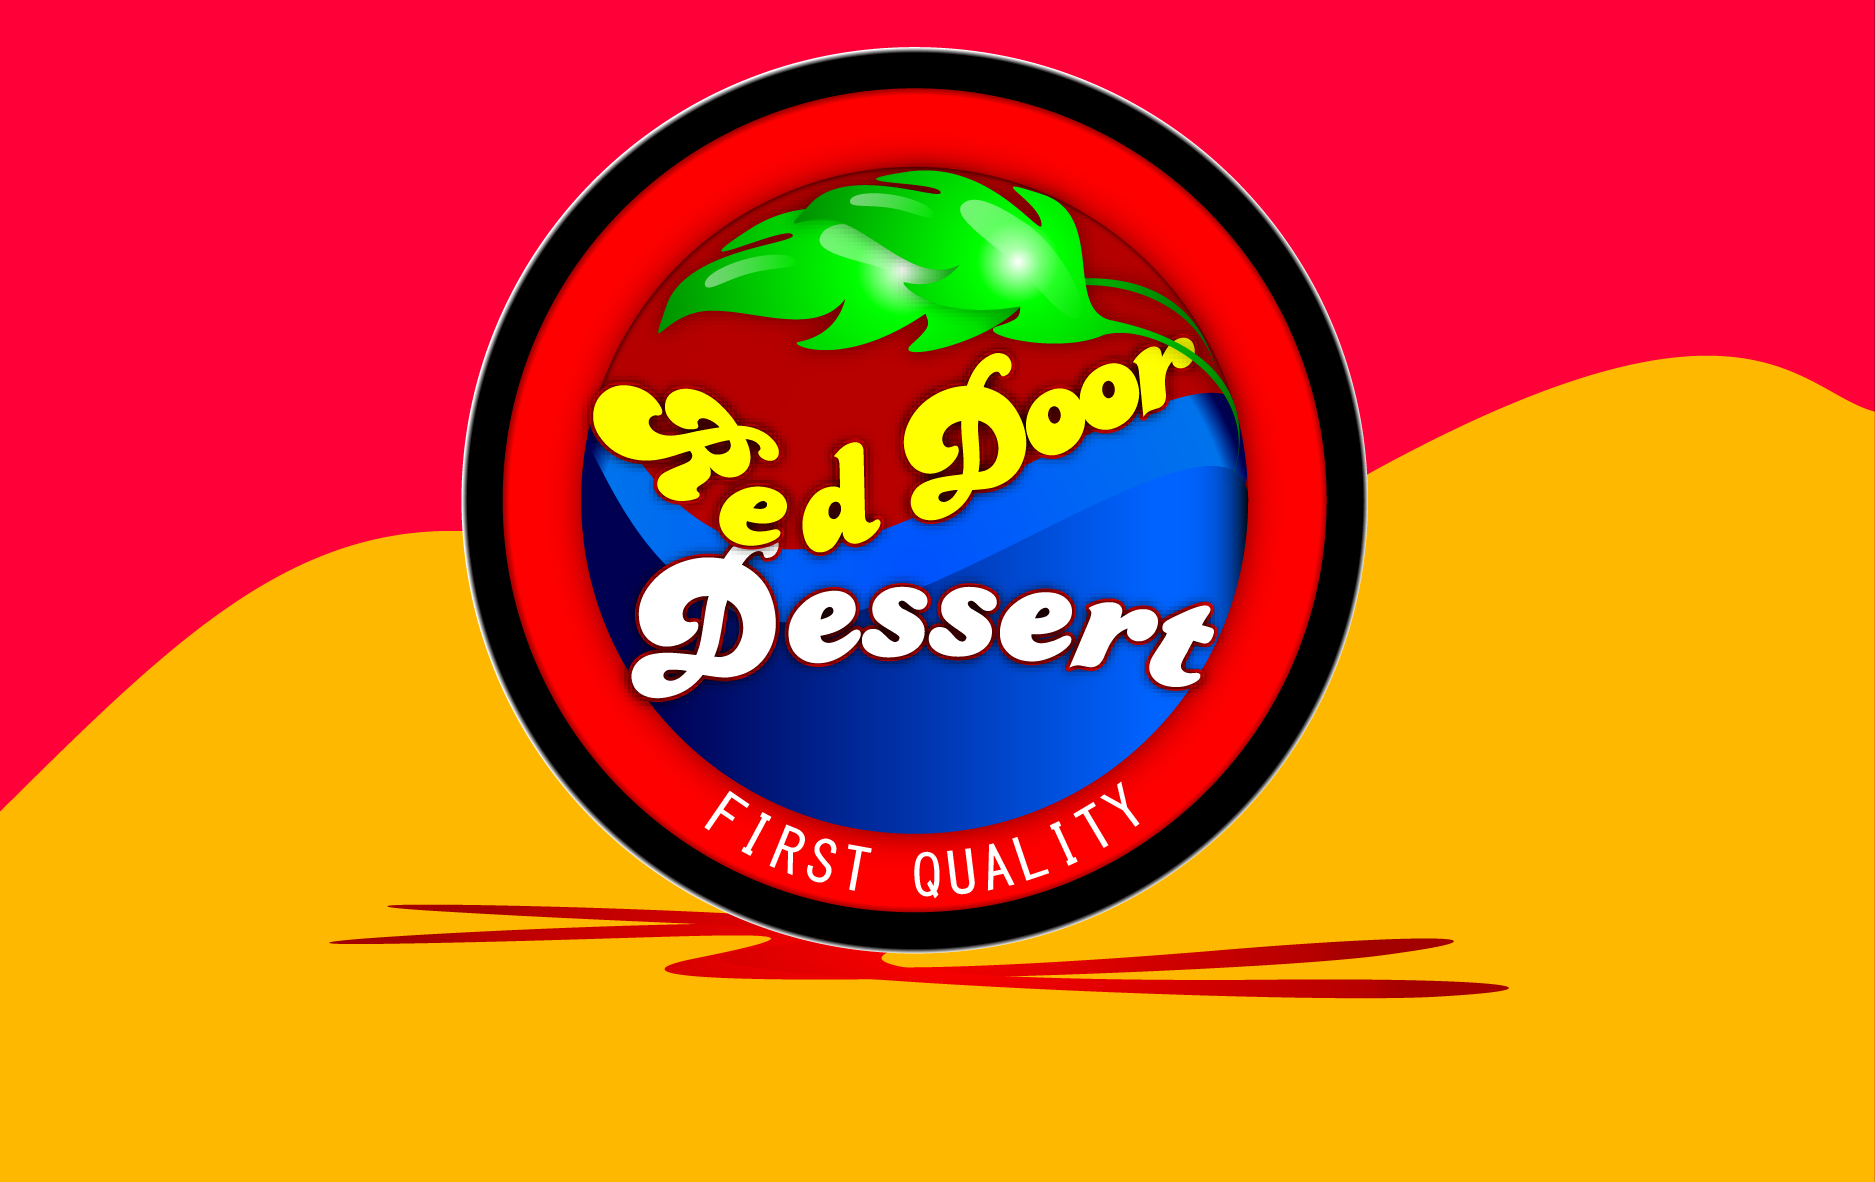 Logo Design by Md Iftekharul Islam Pavel - Entry No. 38 in the Logo Design Contest Fun Logo Design for Red Door Desserts.